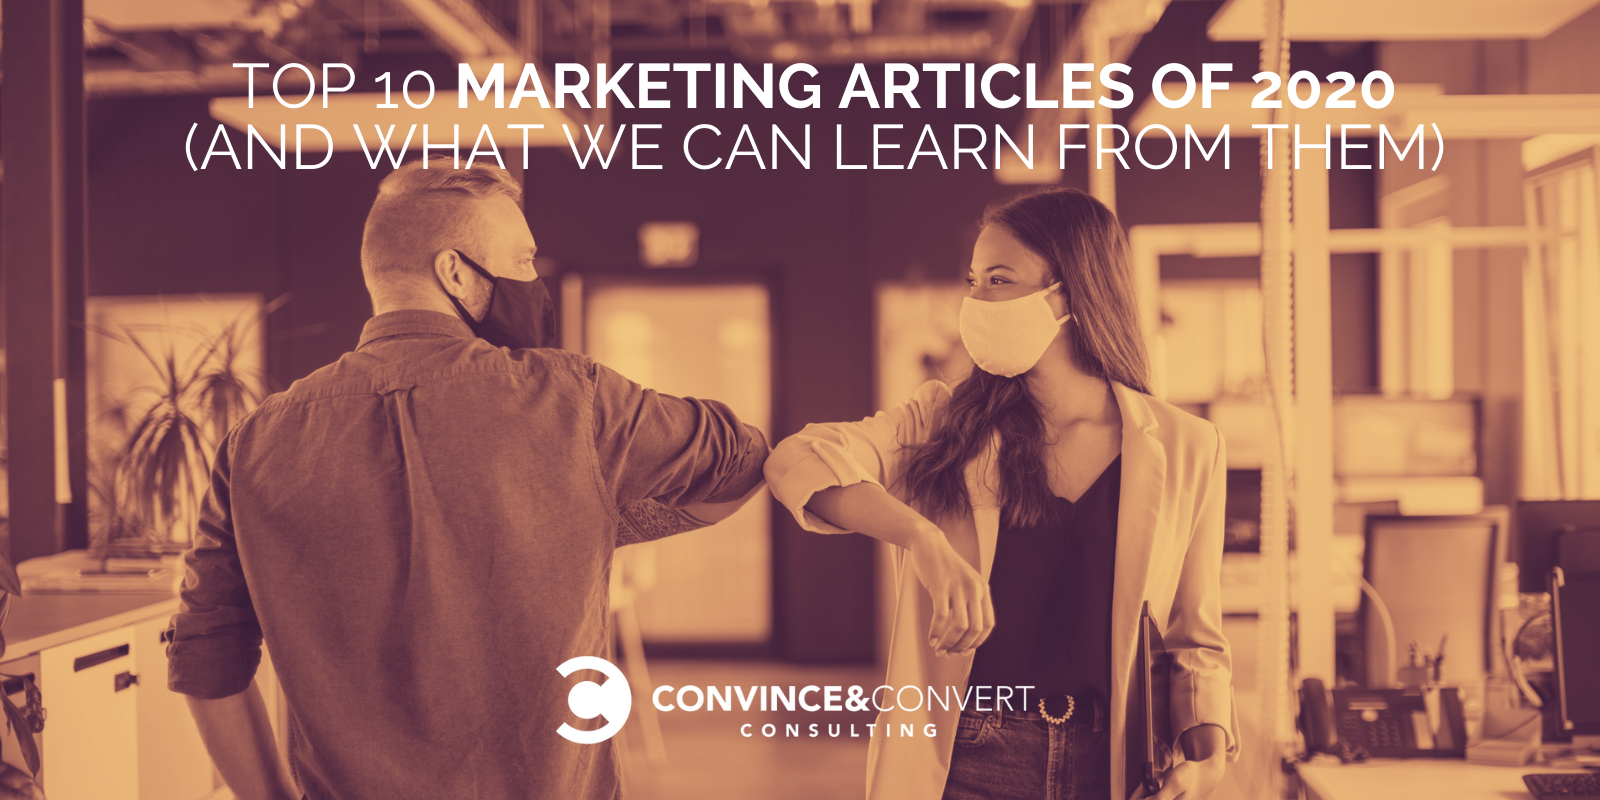 Top 10 Marketing Articles for 2020 (and What We Can Learn from Them)